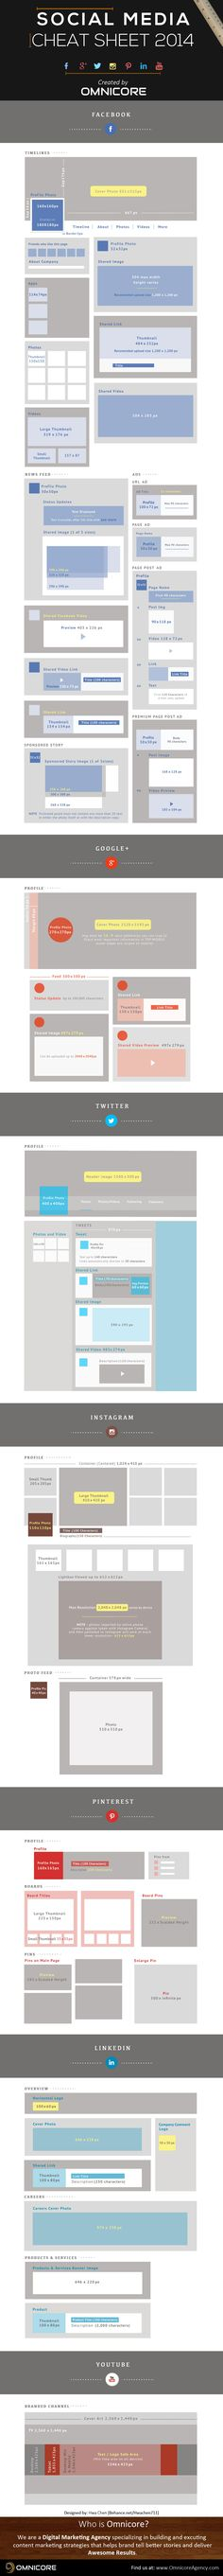 The Essential Social Media Design & Sizing Cheat Sheet